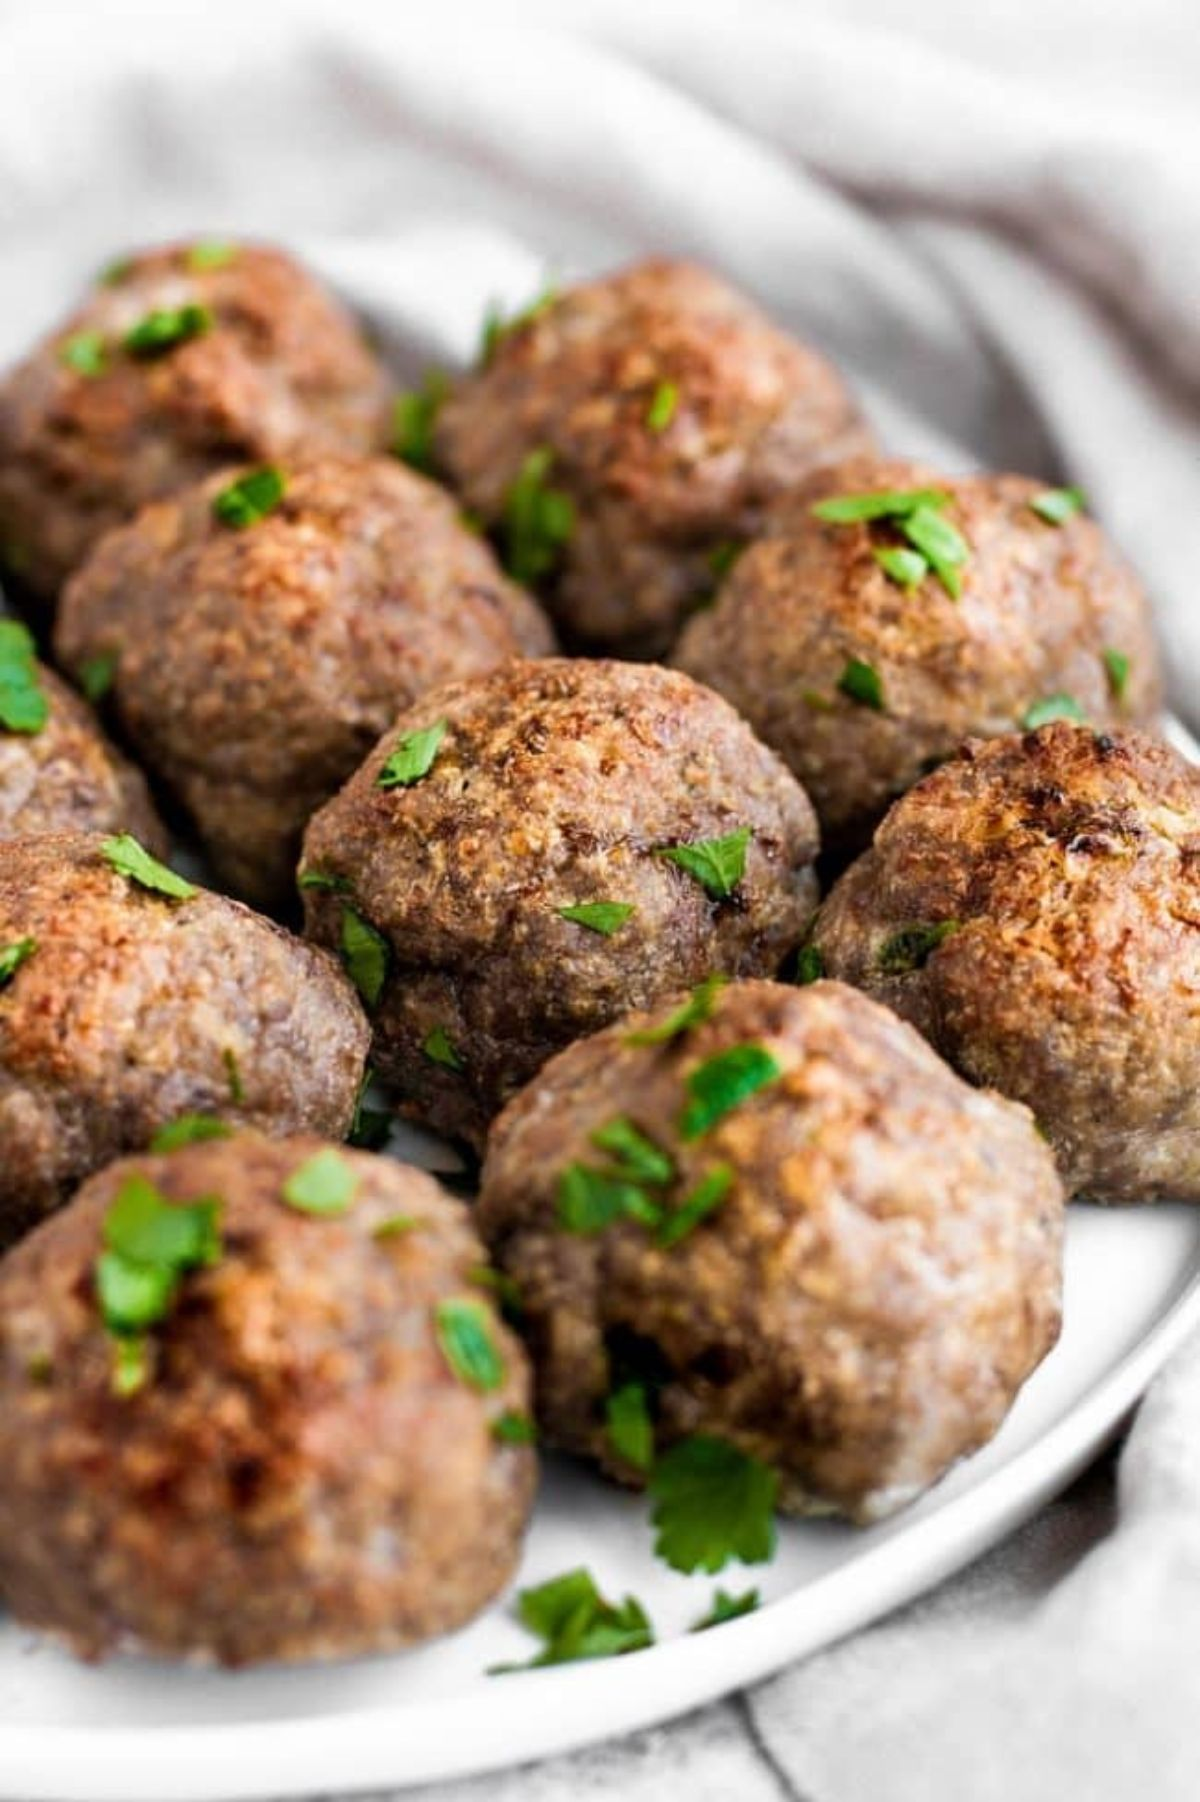 Meatballs on a white plate sprinkled with chopped herbs